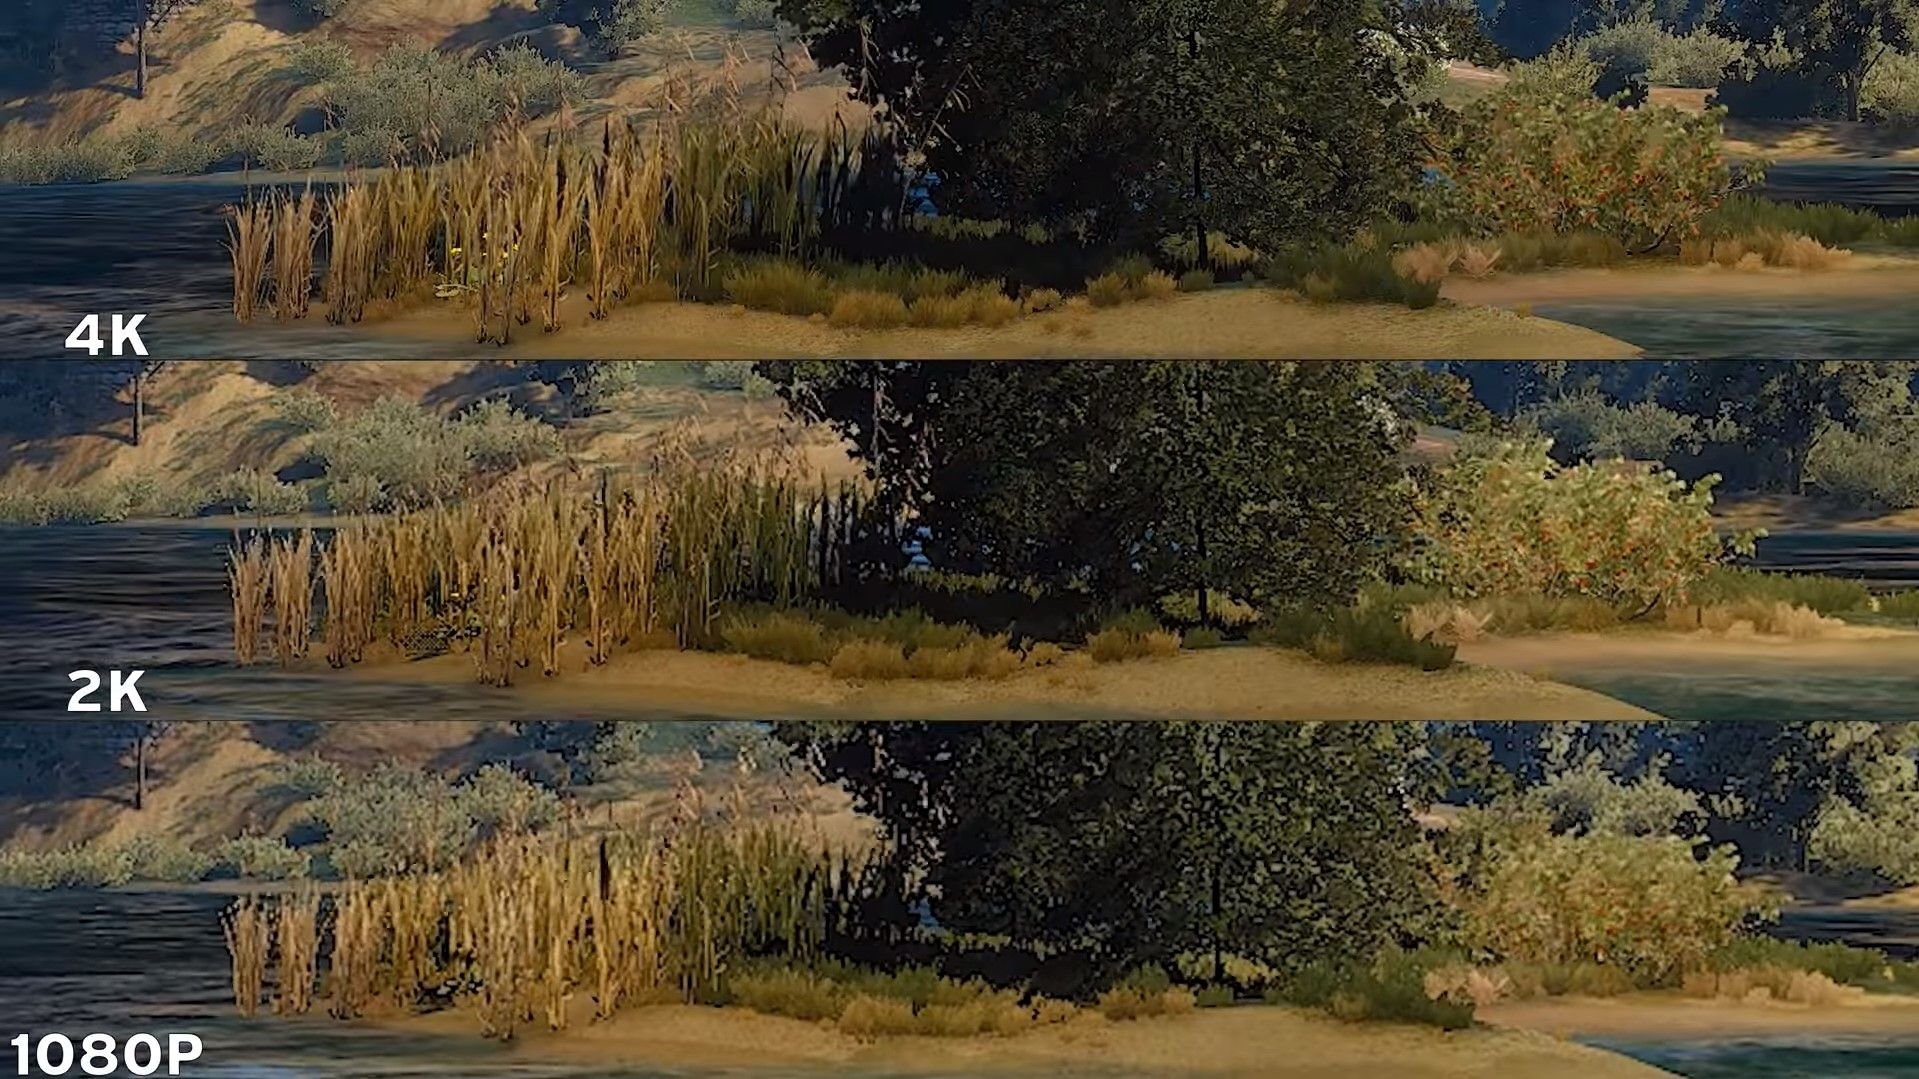 Differences in 4k 2k and 1080p resolution